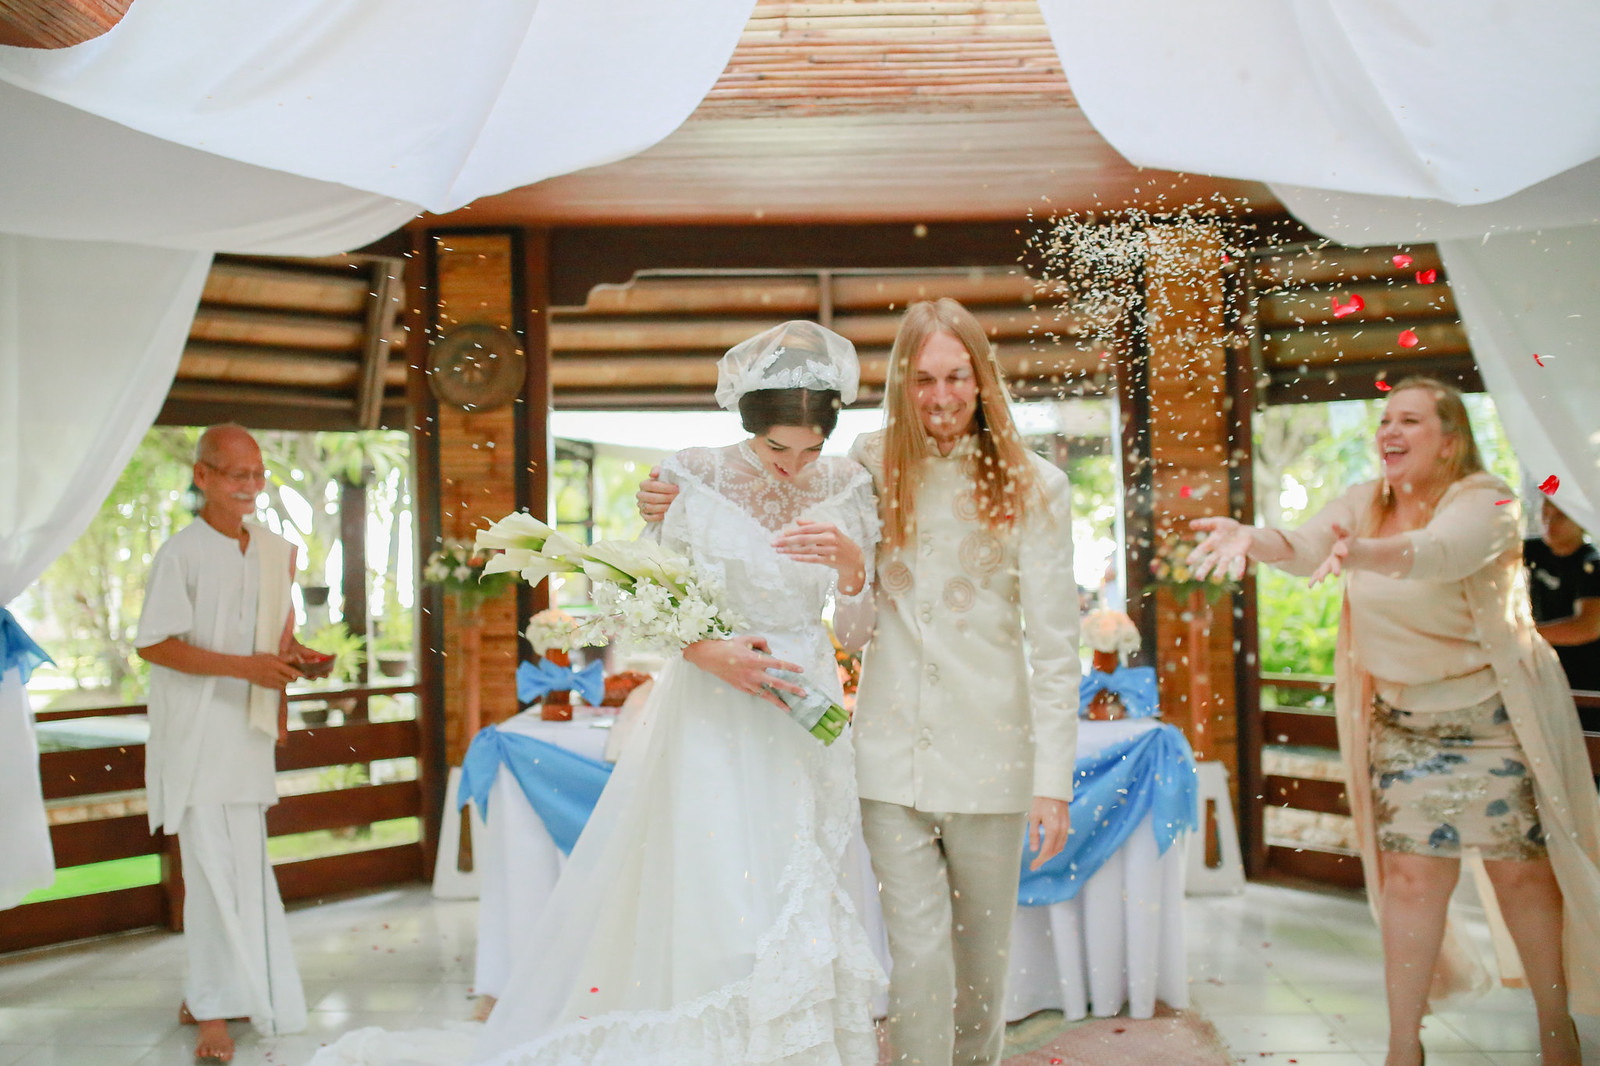 Cebu Beach Wedding, Cebu Wedding Photographer